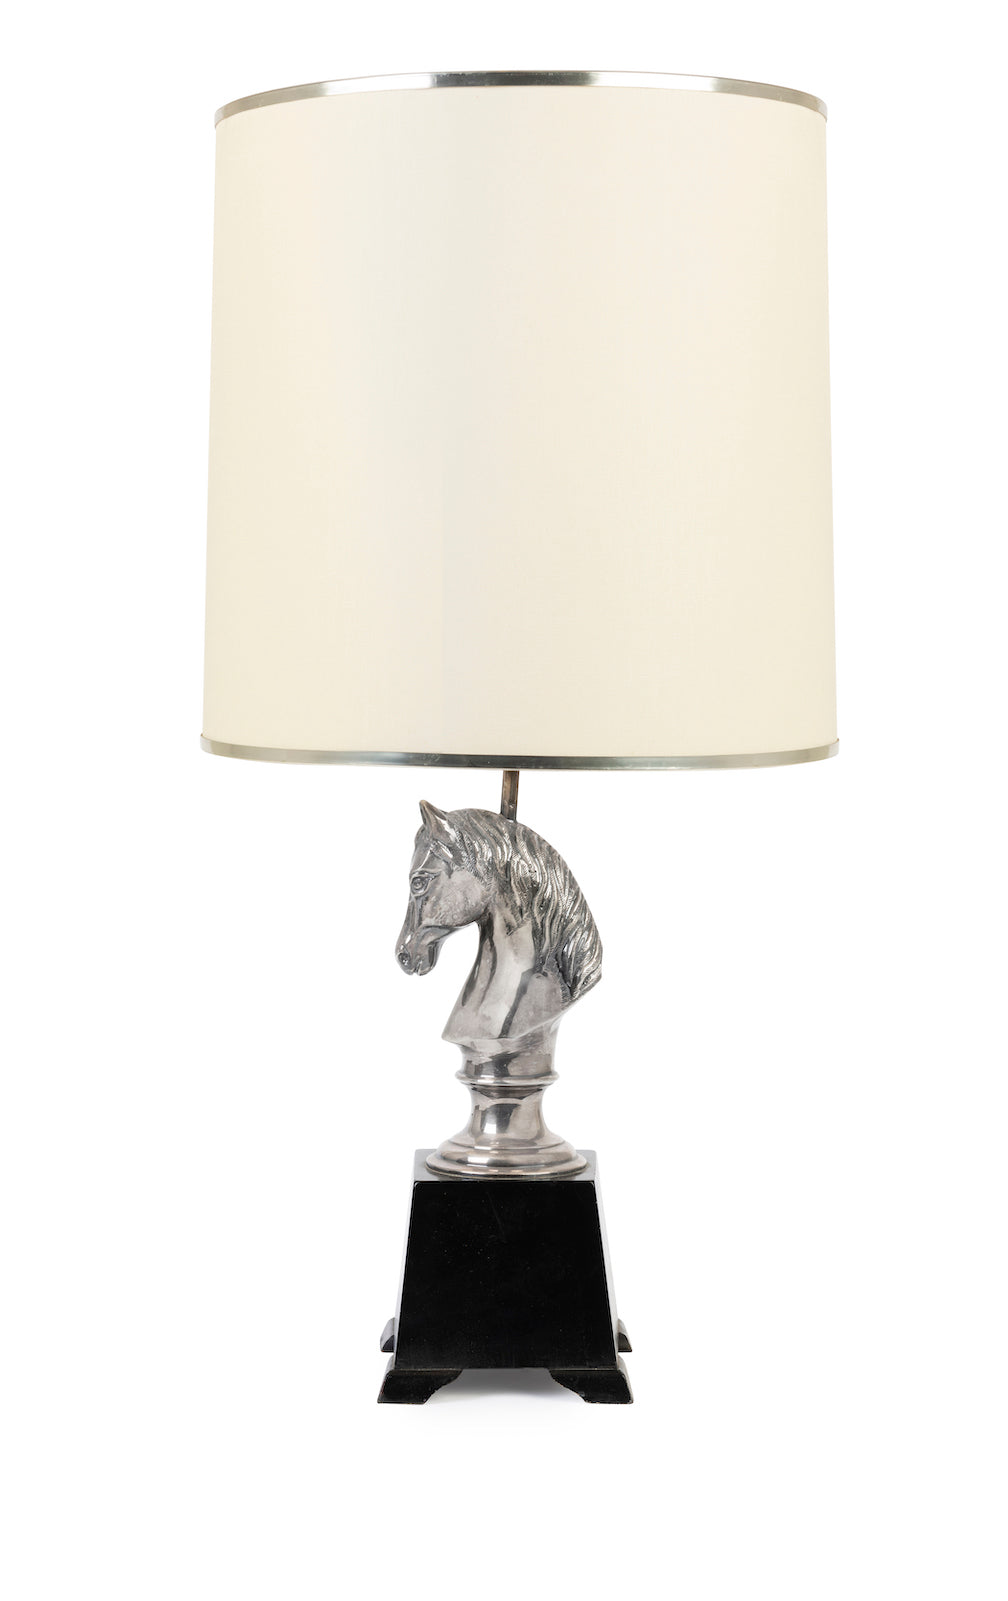 SOLD A stylish silver-plated horse-head table lamp, Italian Circa 1950